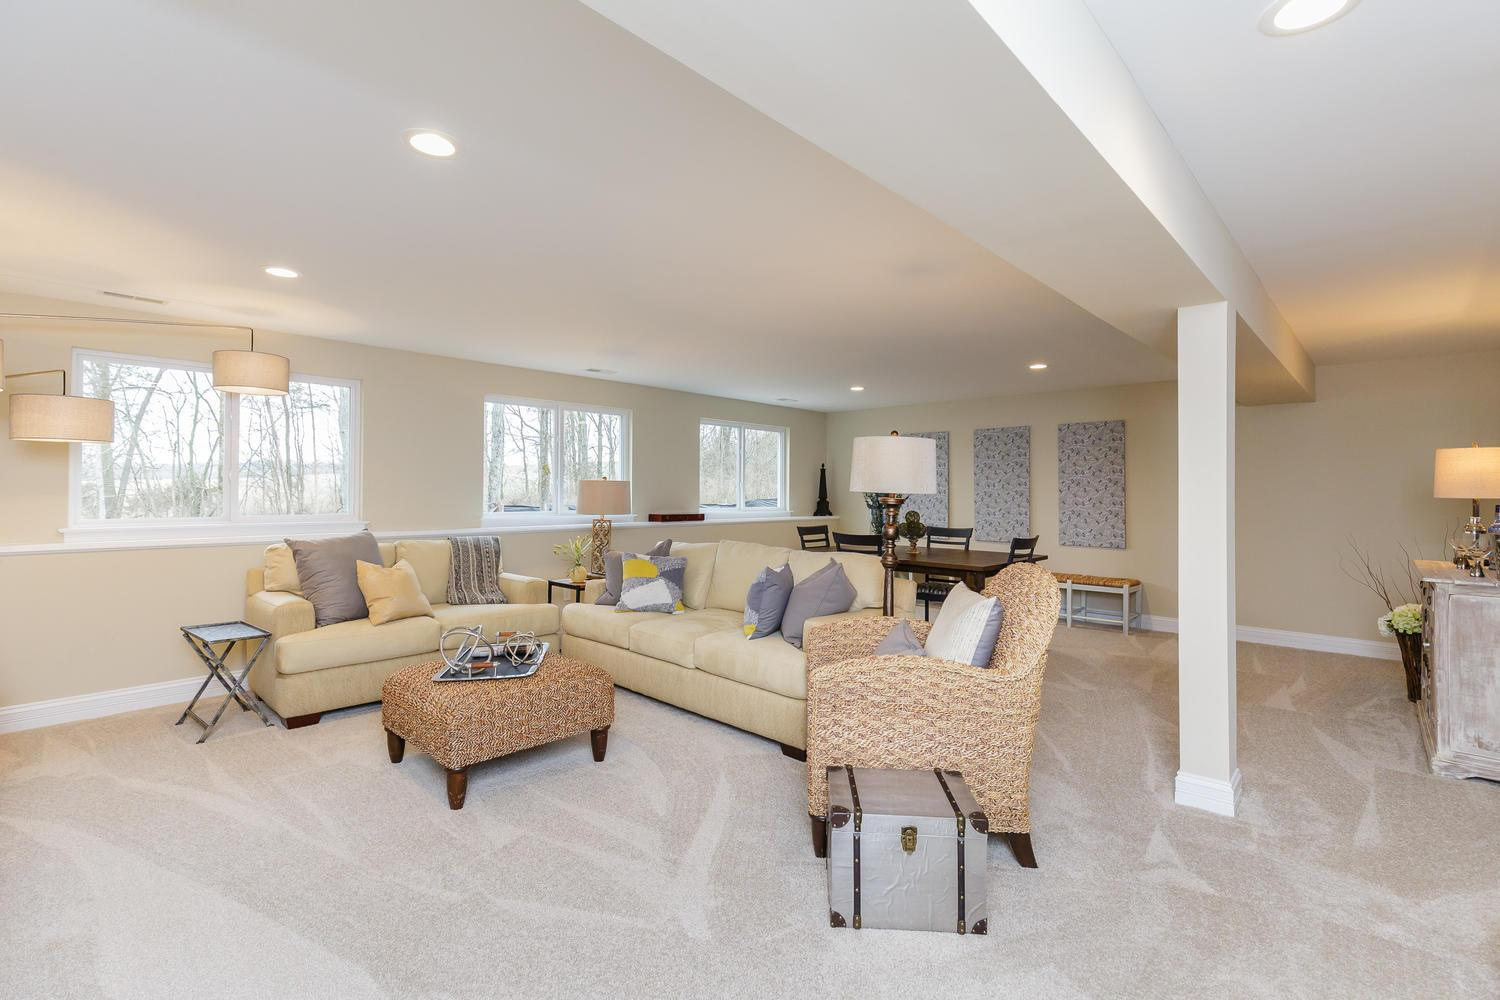 Finished Lower Level:All plans offer the option of a finished lower level